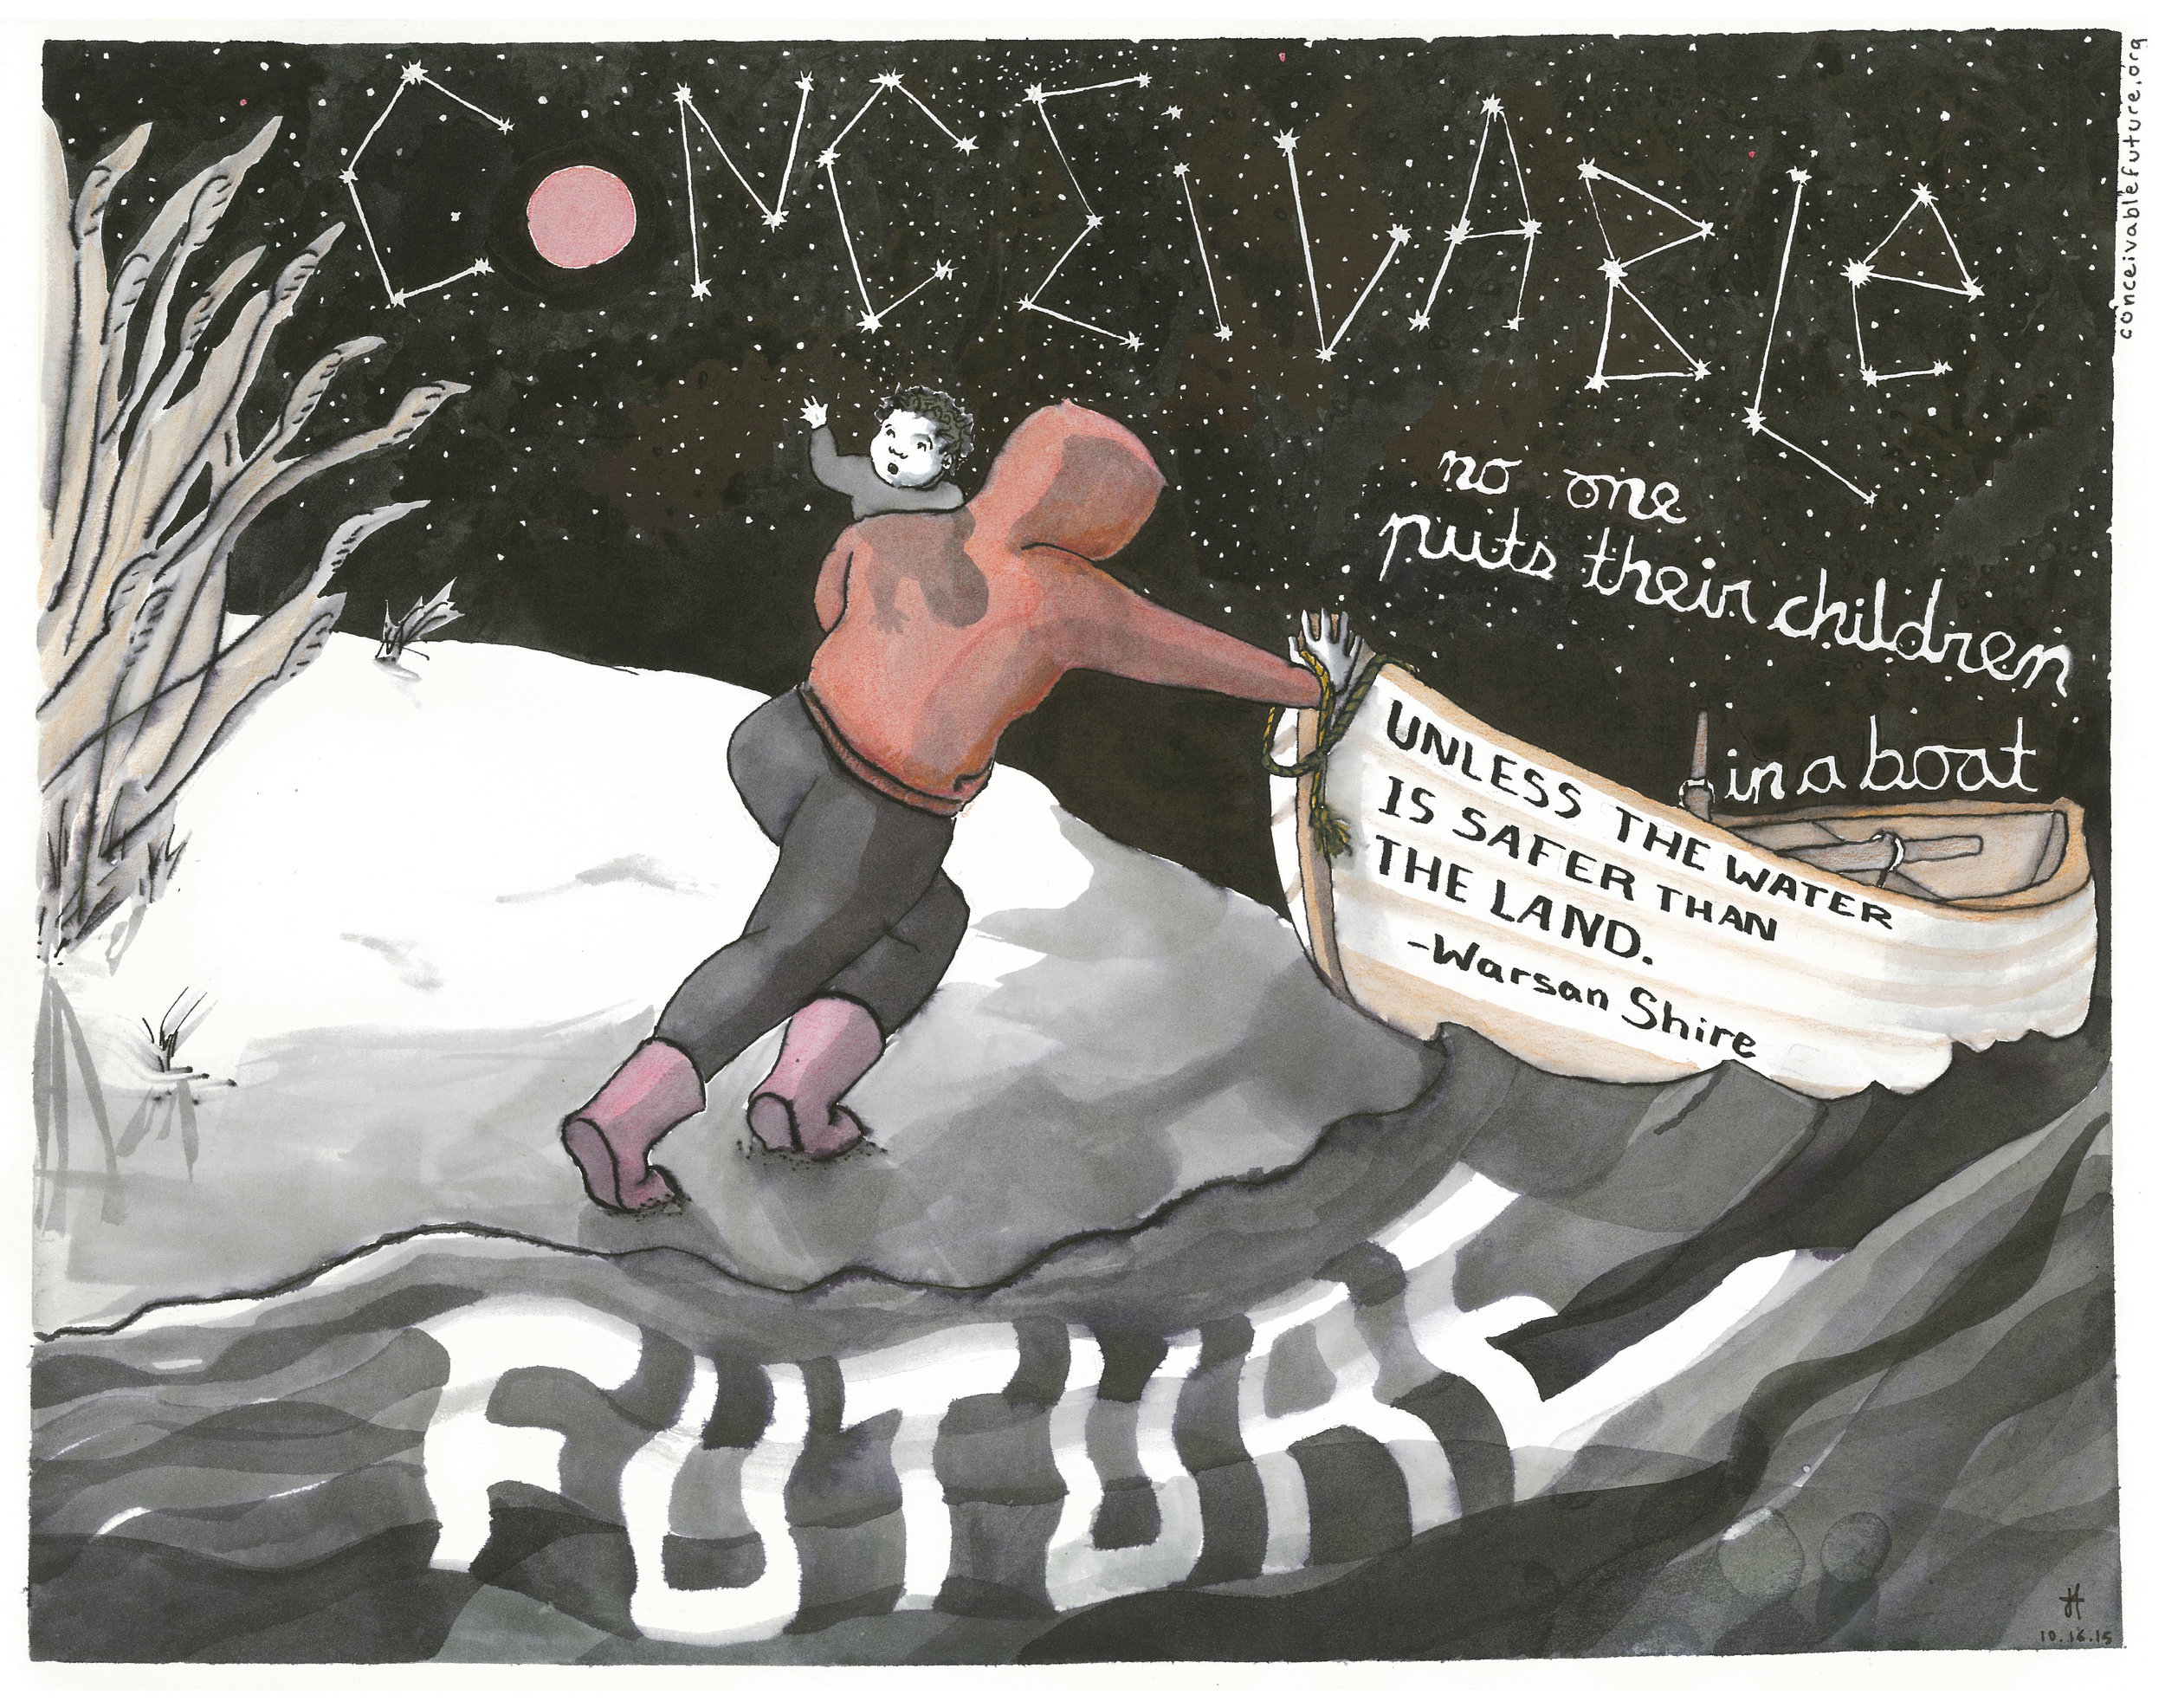 A new project with local connections frames global warming as a reproductive justice issue. (Illustration by Conceivable Future)